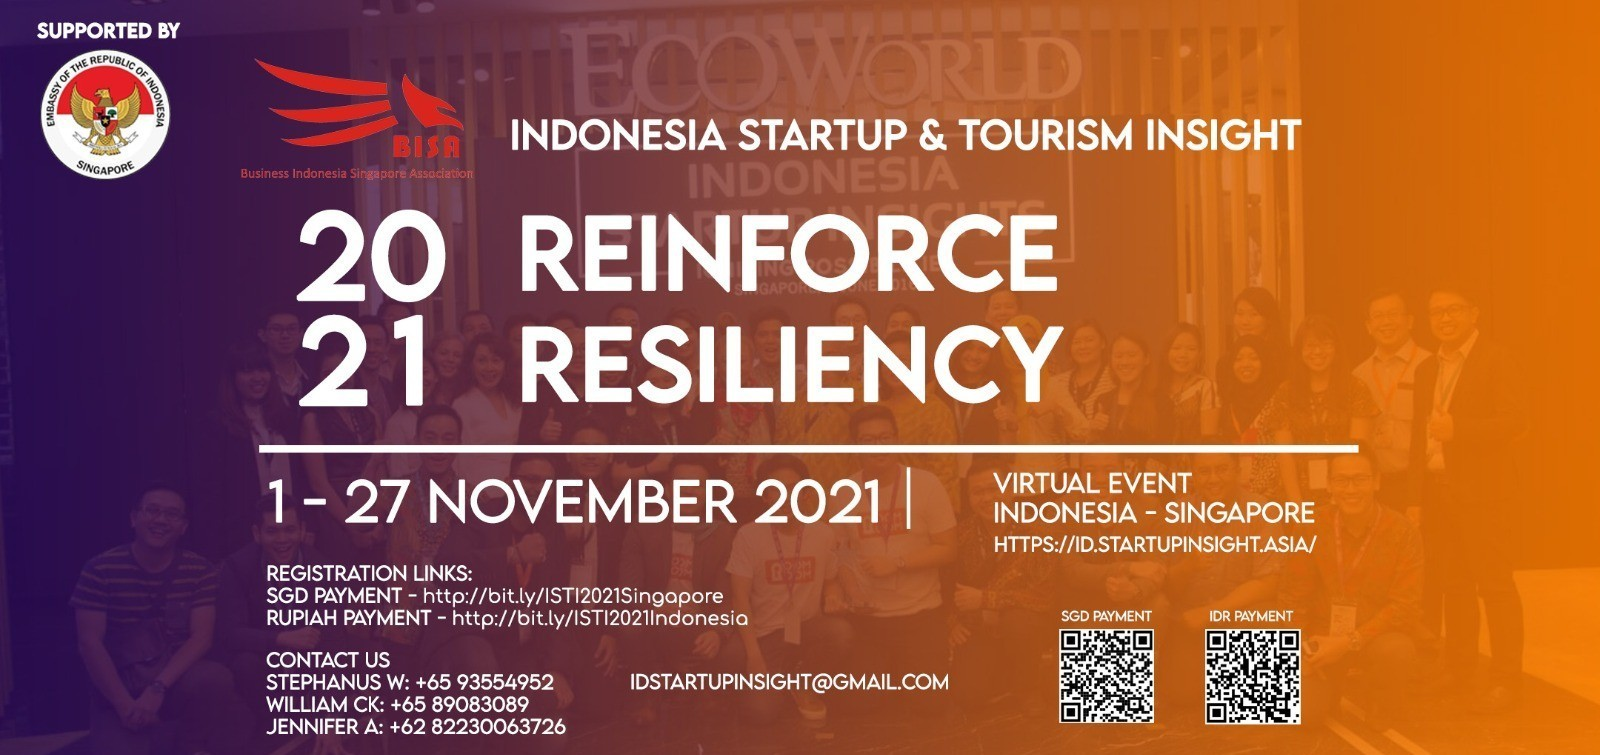 Indonesia Startup & Tourism Insight 2021